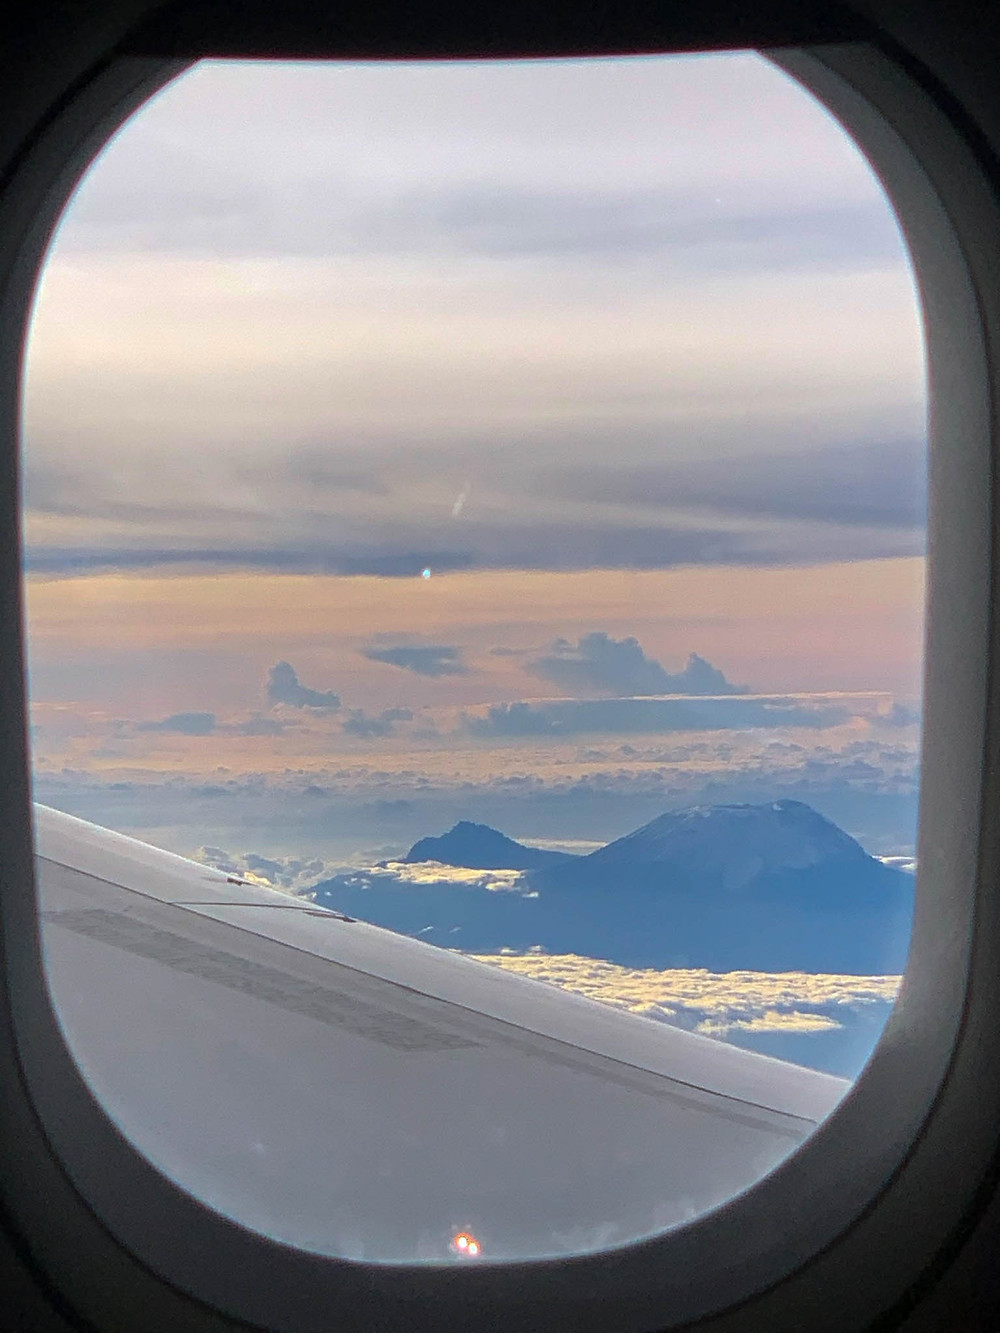 Quite the Kilimanjaro view - beats a hike!